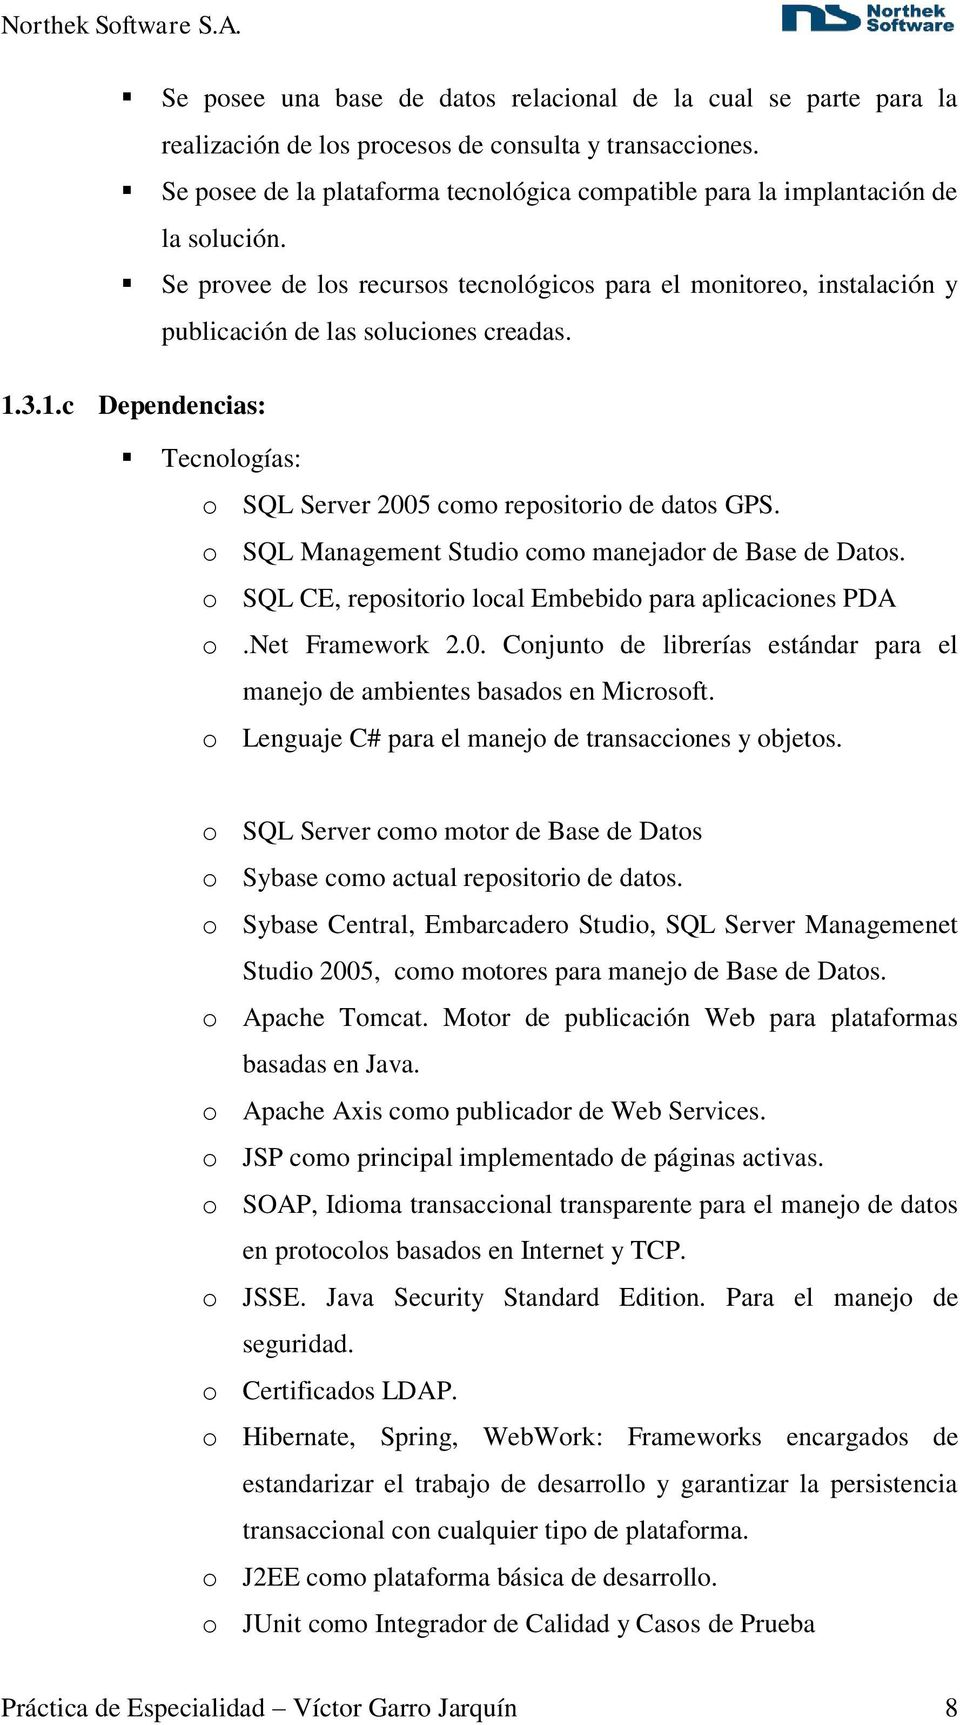 3.1.c Dependencias: Tecnologías: o SQL Server 2005 como repositorio de datos GPS. o SQL Management Studio como manejador de Base de Datos. o SQL CE, repositorio local Embebido para aplicaciones PDA o.